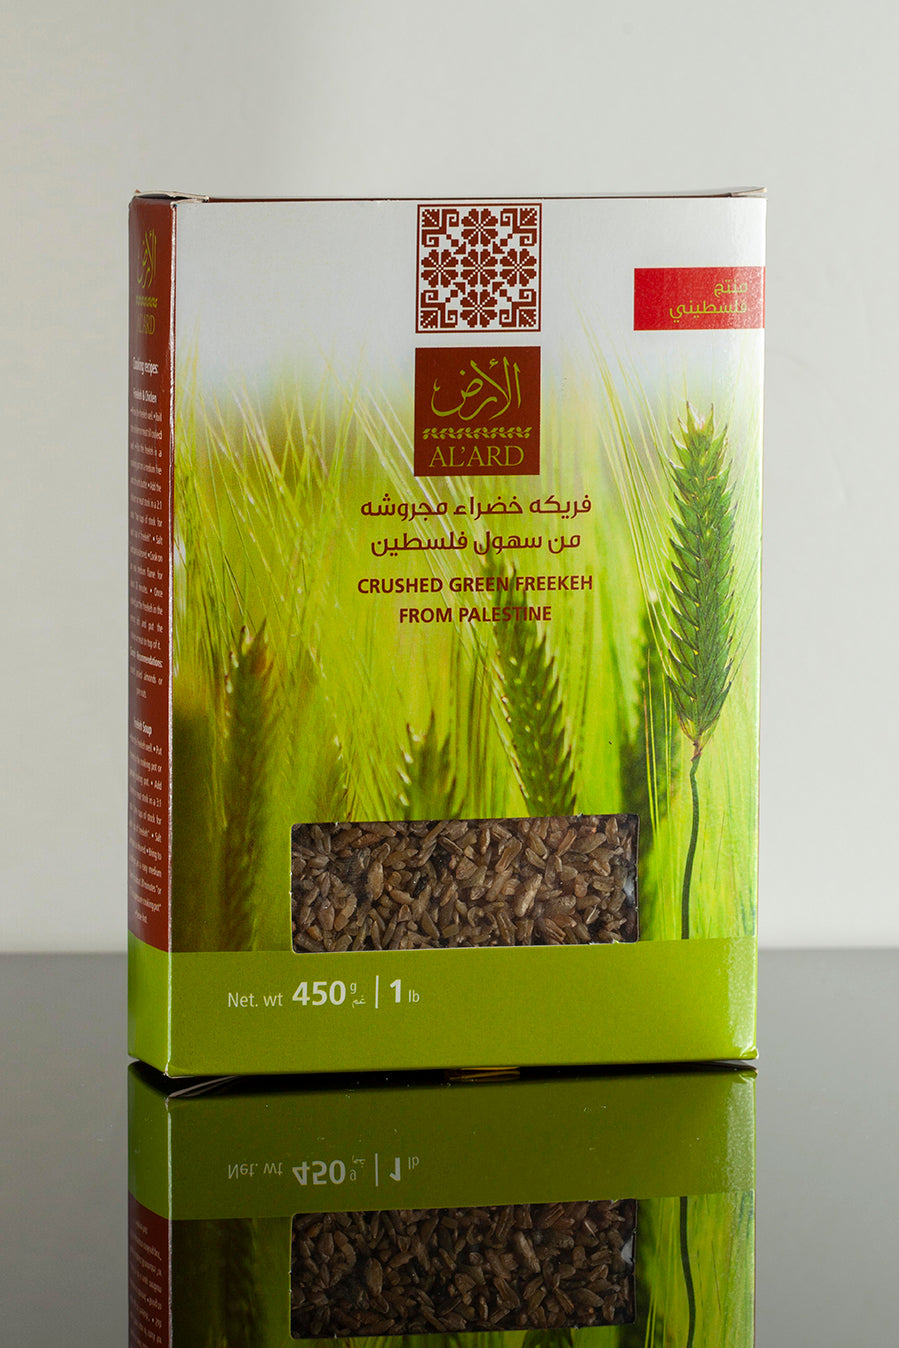 Crushed Green Freekeh - 450g